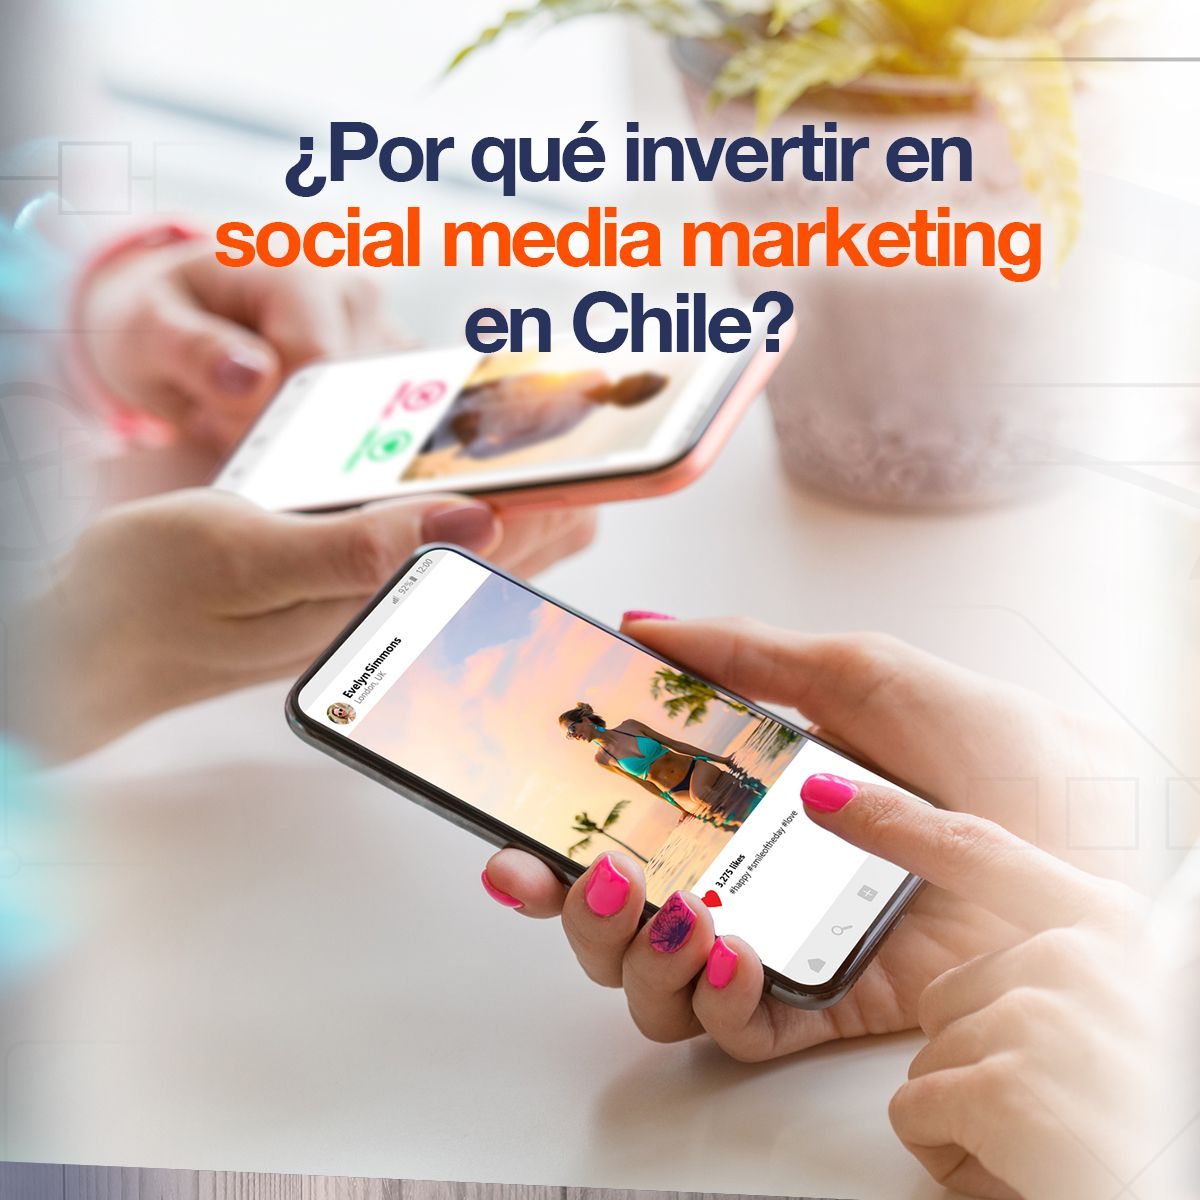 ¿Por qué invertir en social media marketing en Chile?